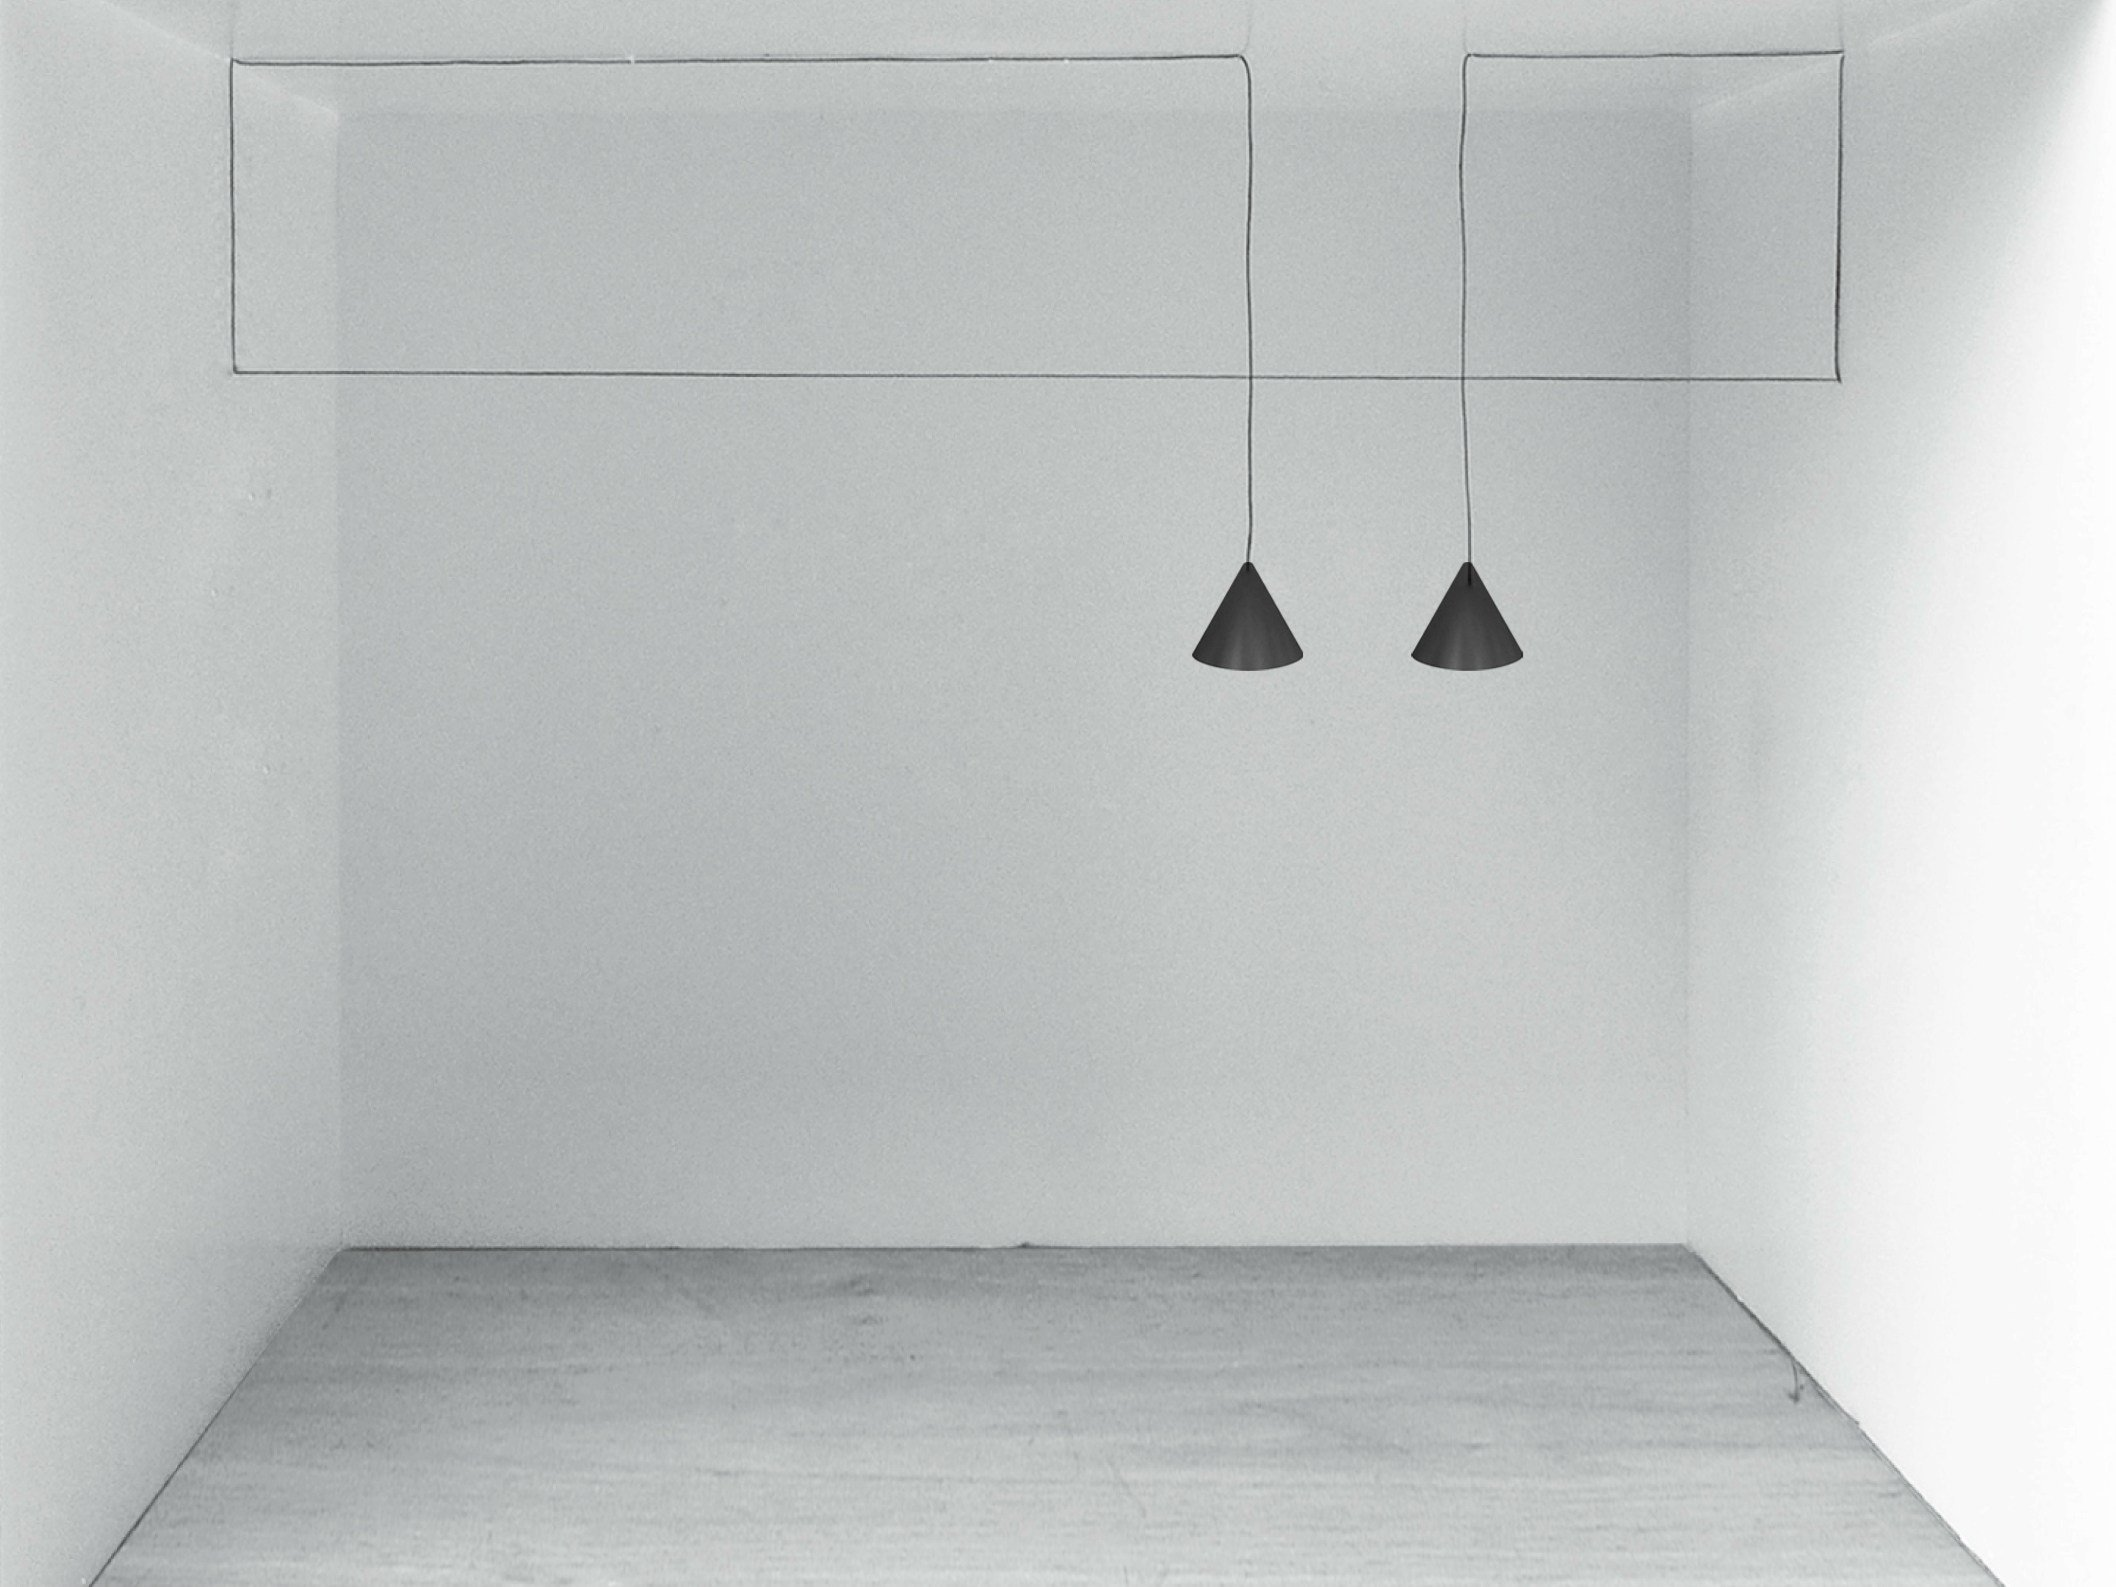 Michaels Led String Lights : LED pendant lamp STRING LIGHT - CONE HEAD by FLOS design Michael Anastassiades